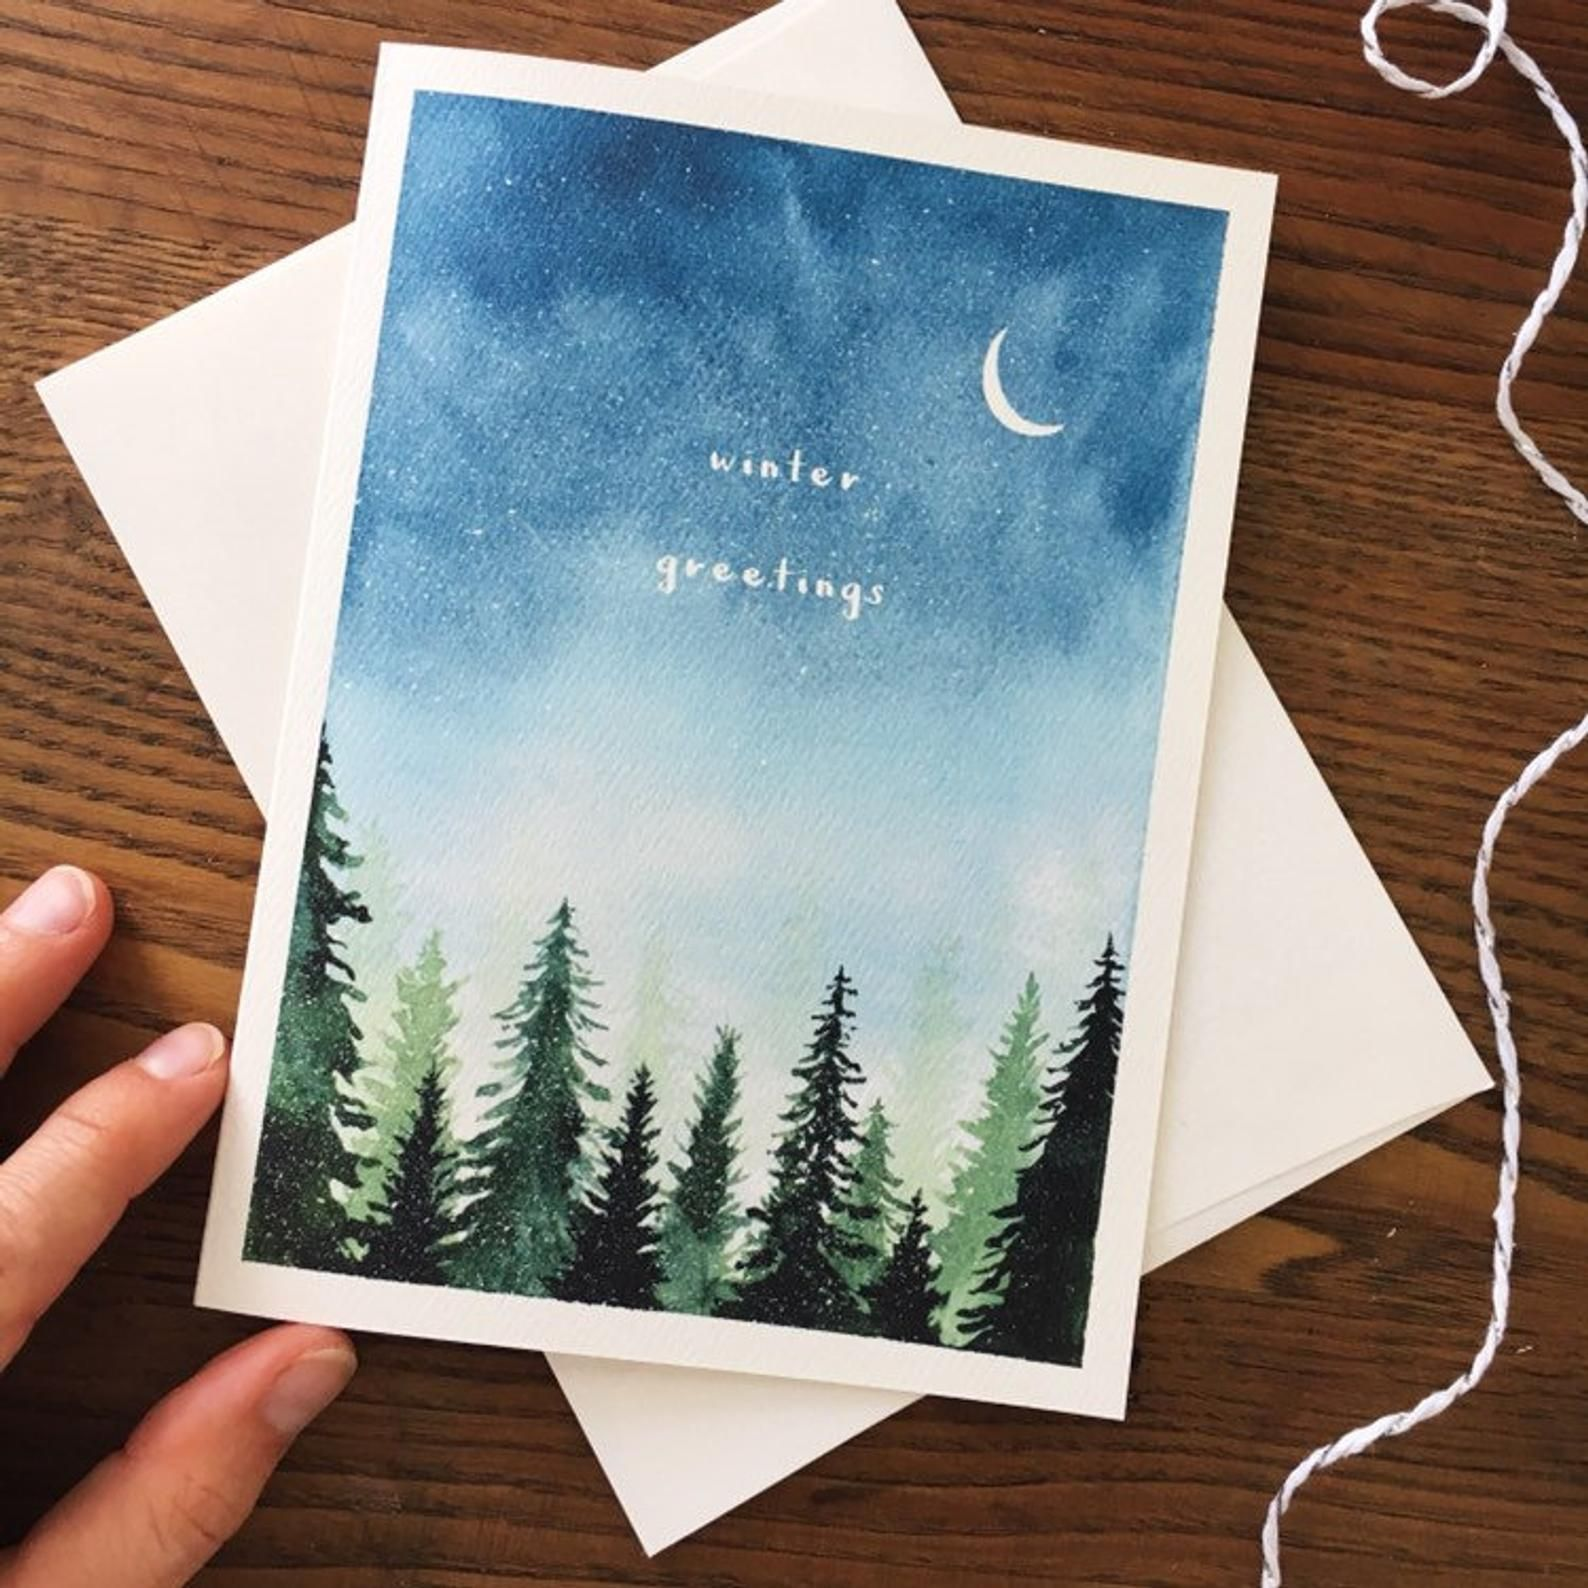 Snowy Trees. Christmas Card. Winter Greetings. Hol